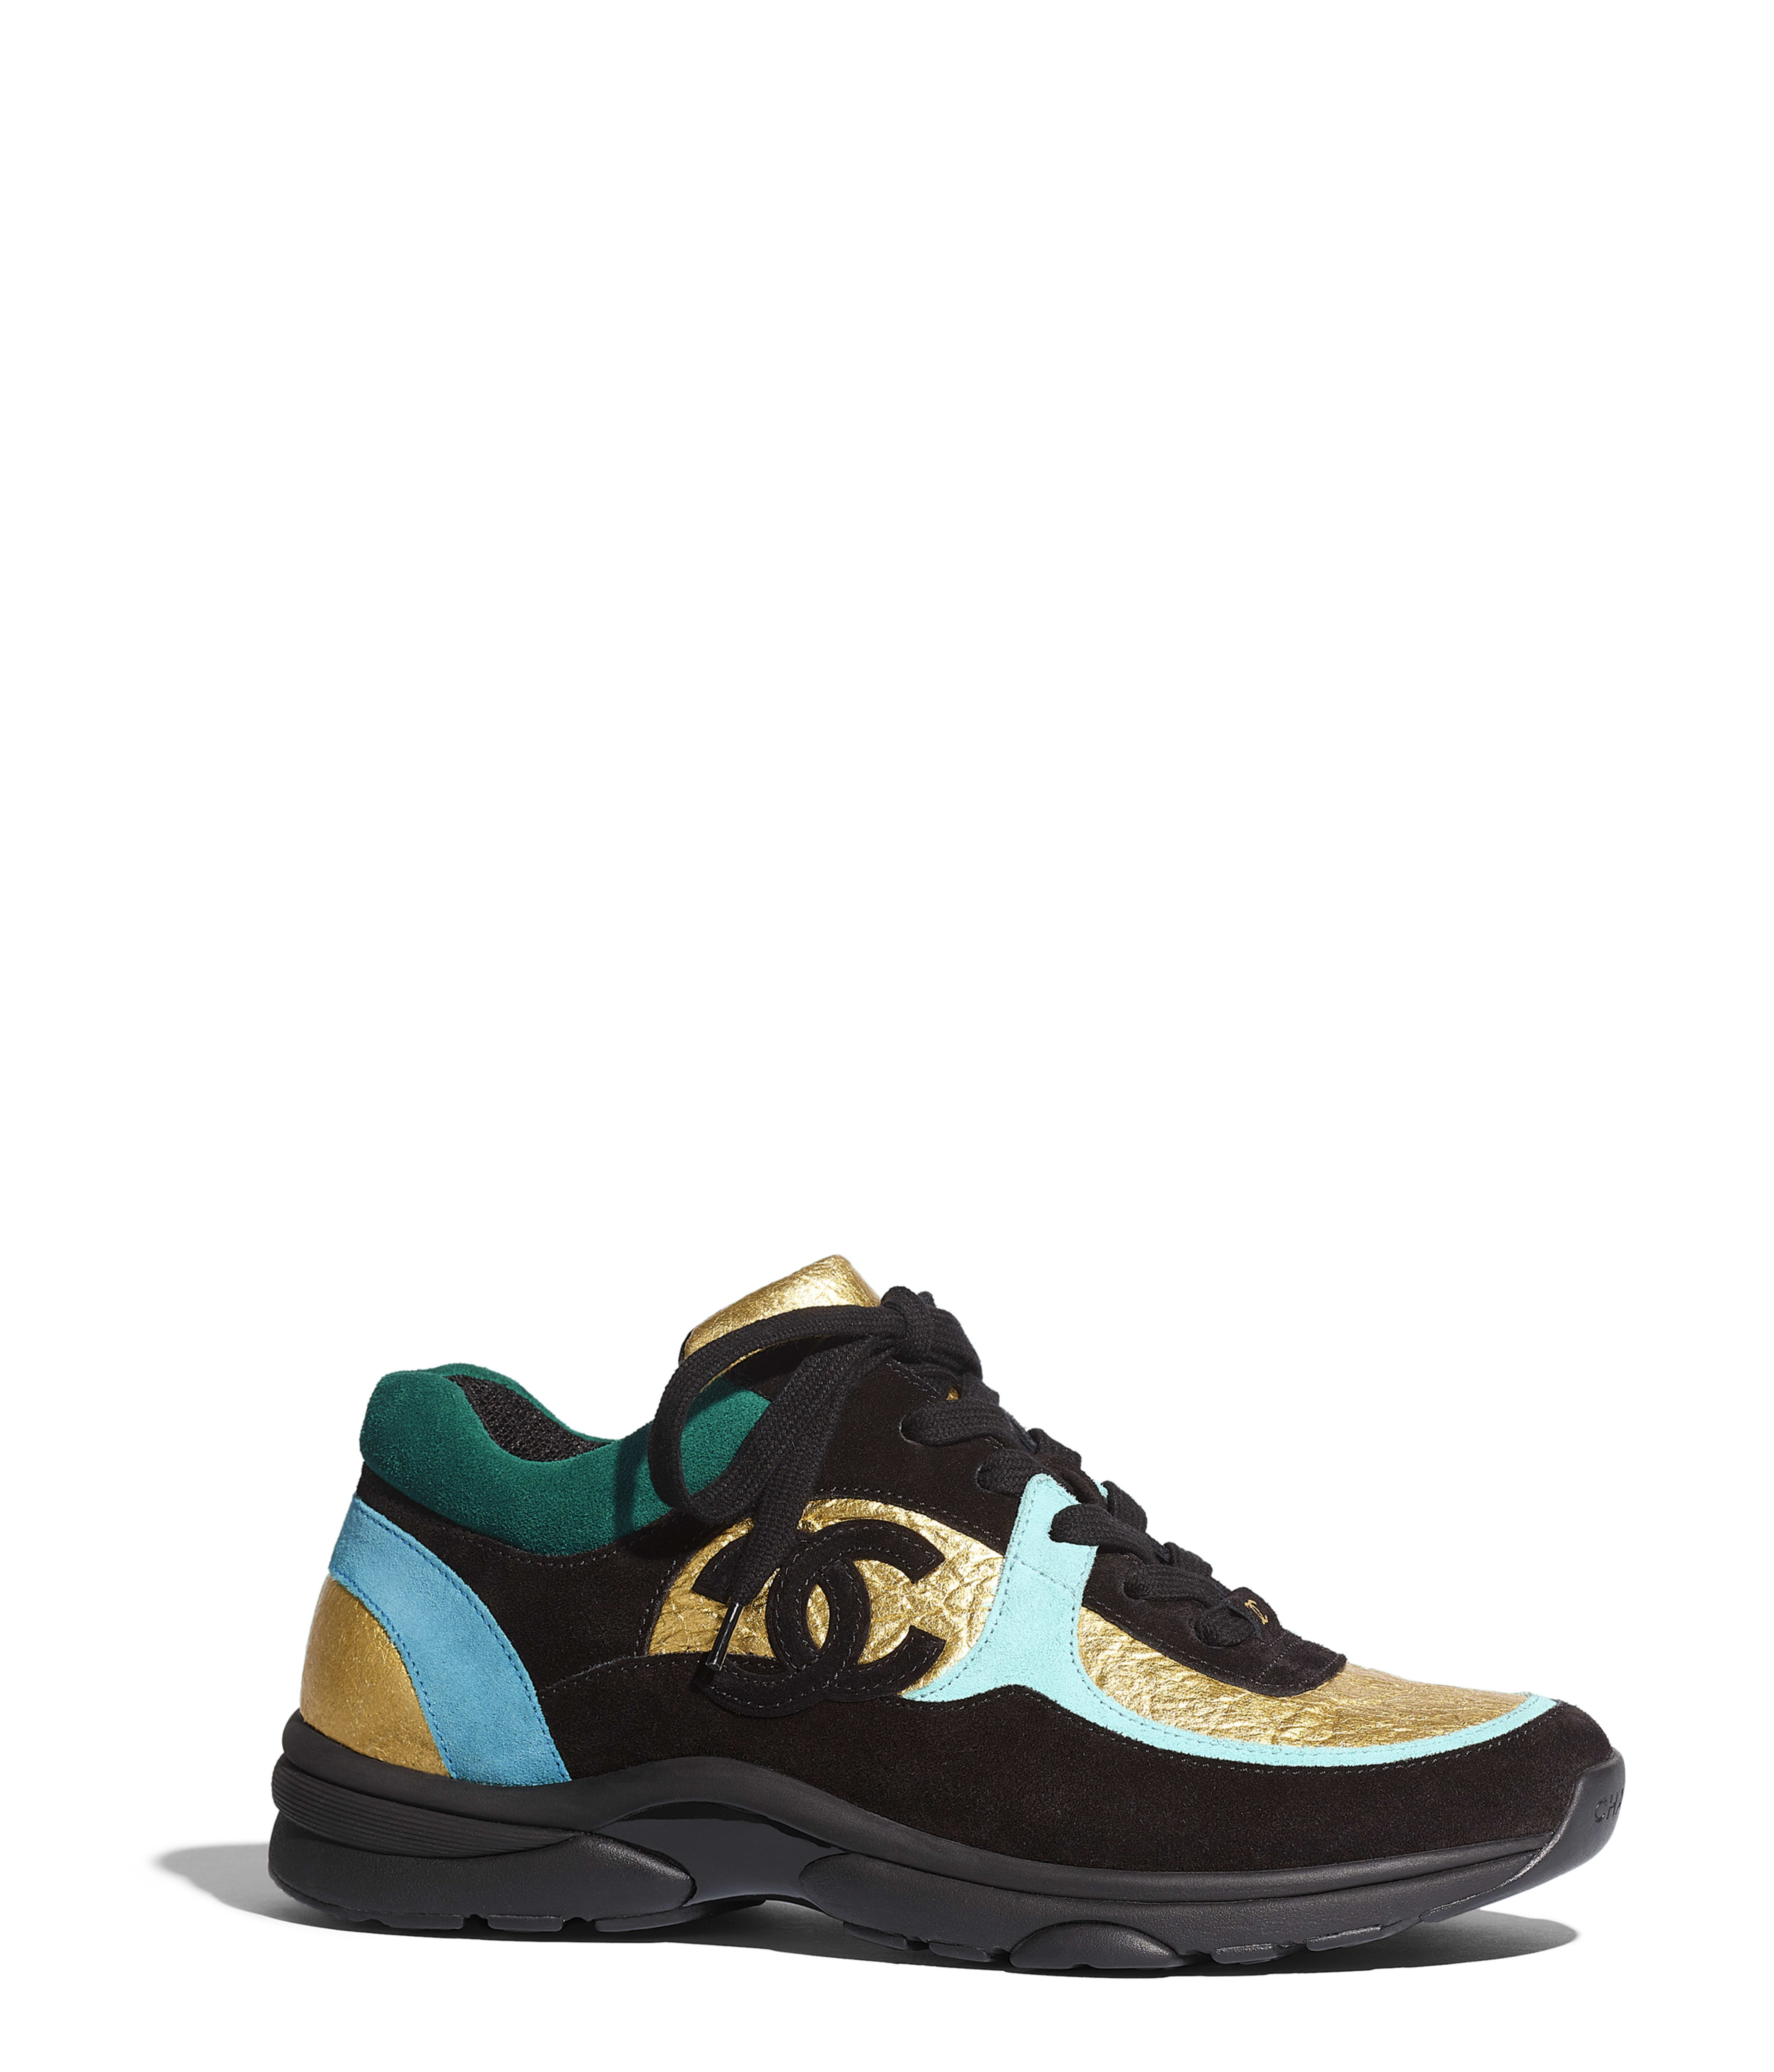 5934f6f8e08d Sneakers Fabric & Suede Calfskin, Black, Turquoise & Gold Ref.  G34360Y53365K1701